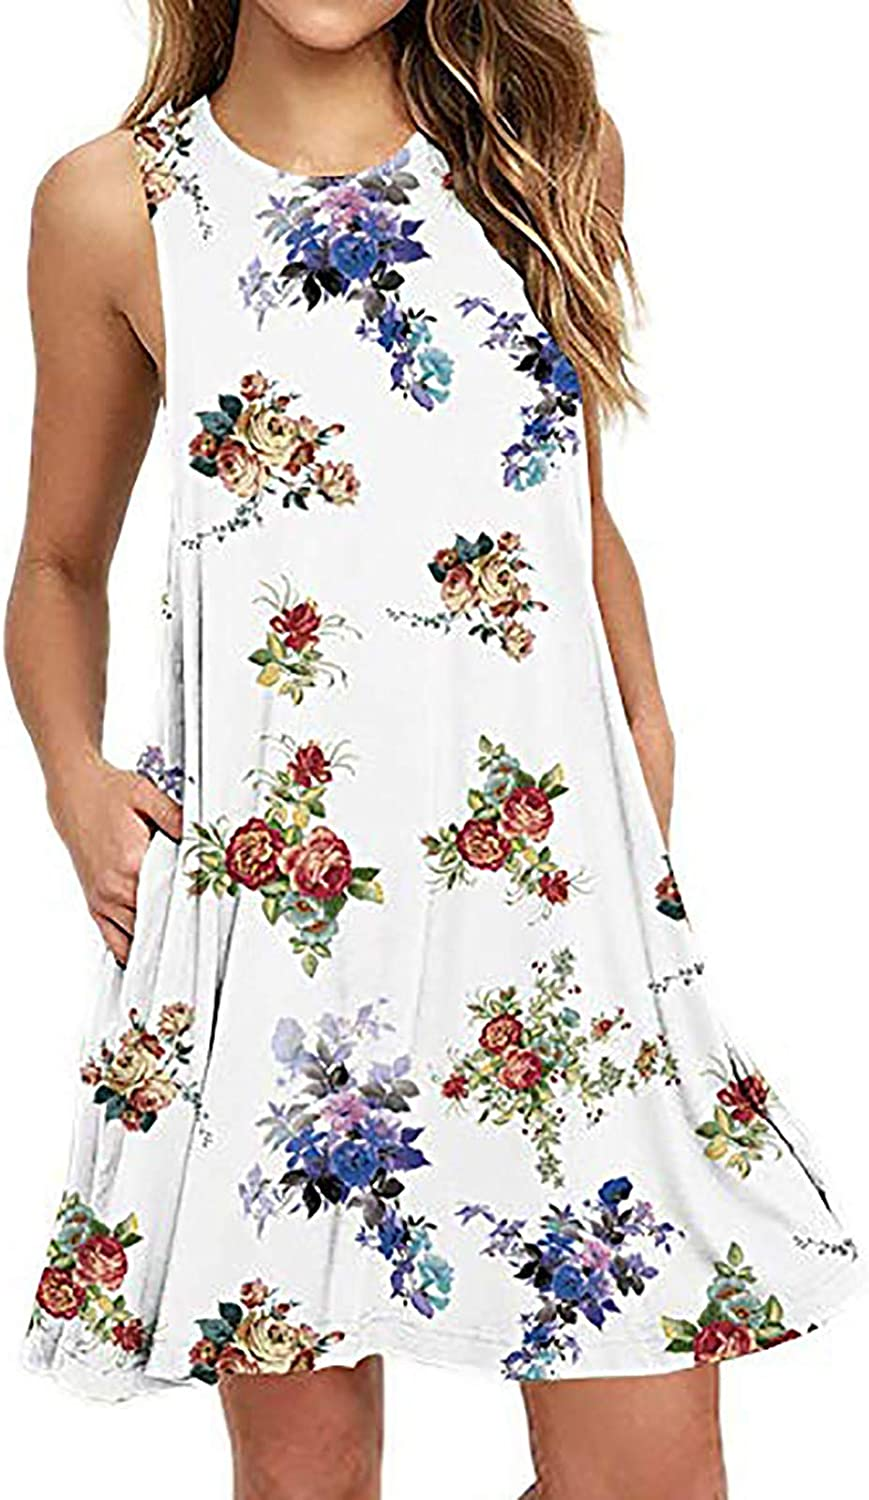 Womens Dress Casual O- Neck Summer Fresh OFFicial site Leaf Floral Credence Sleev Print